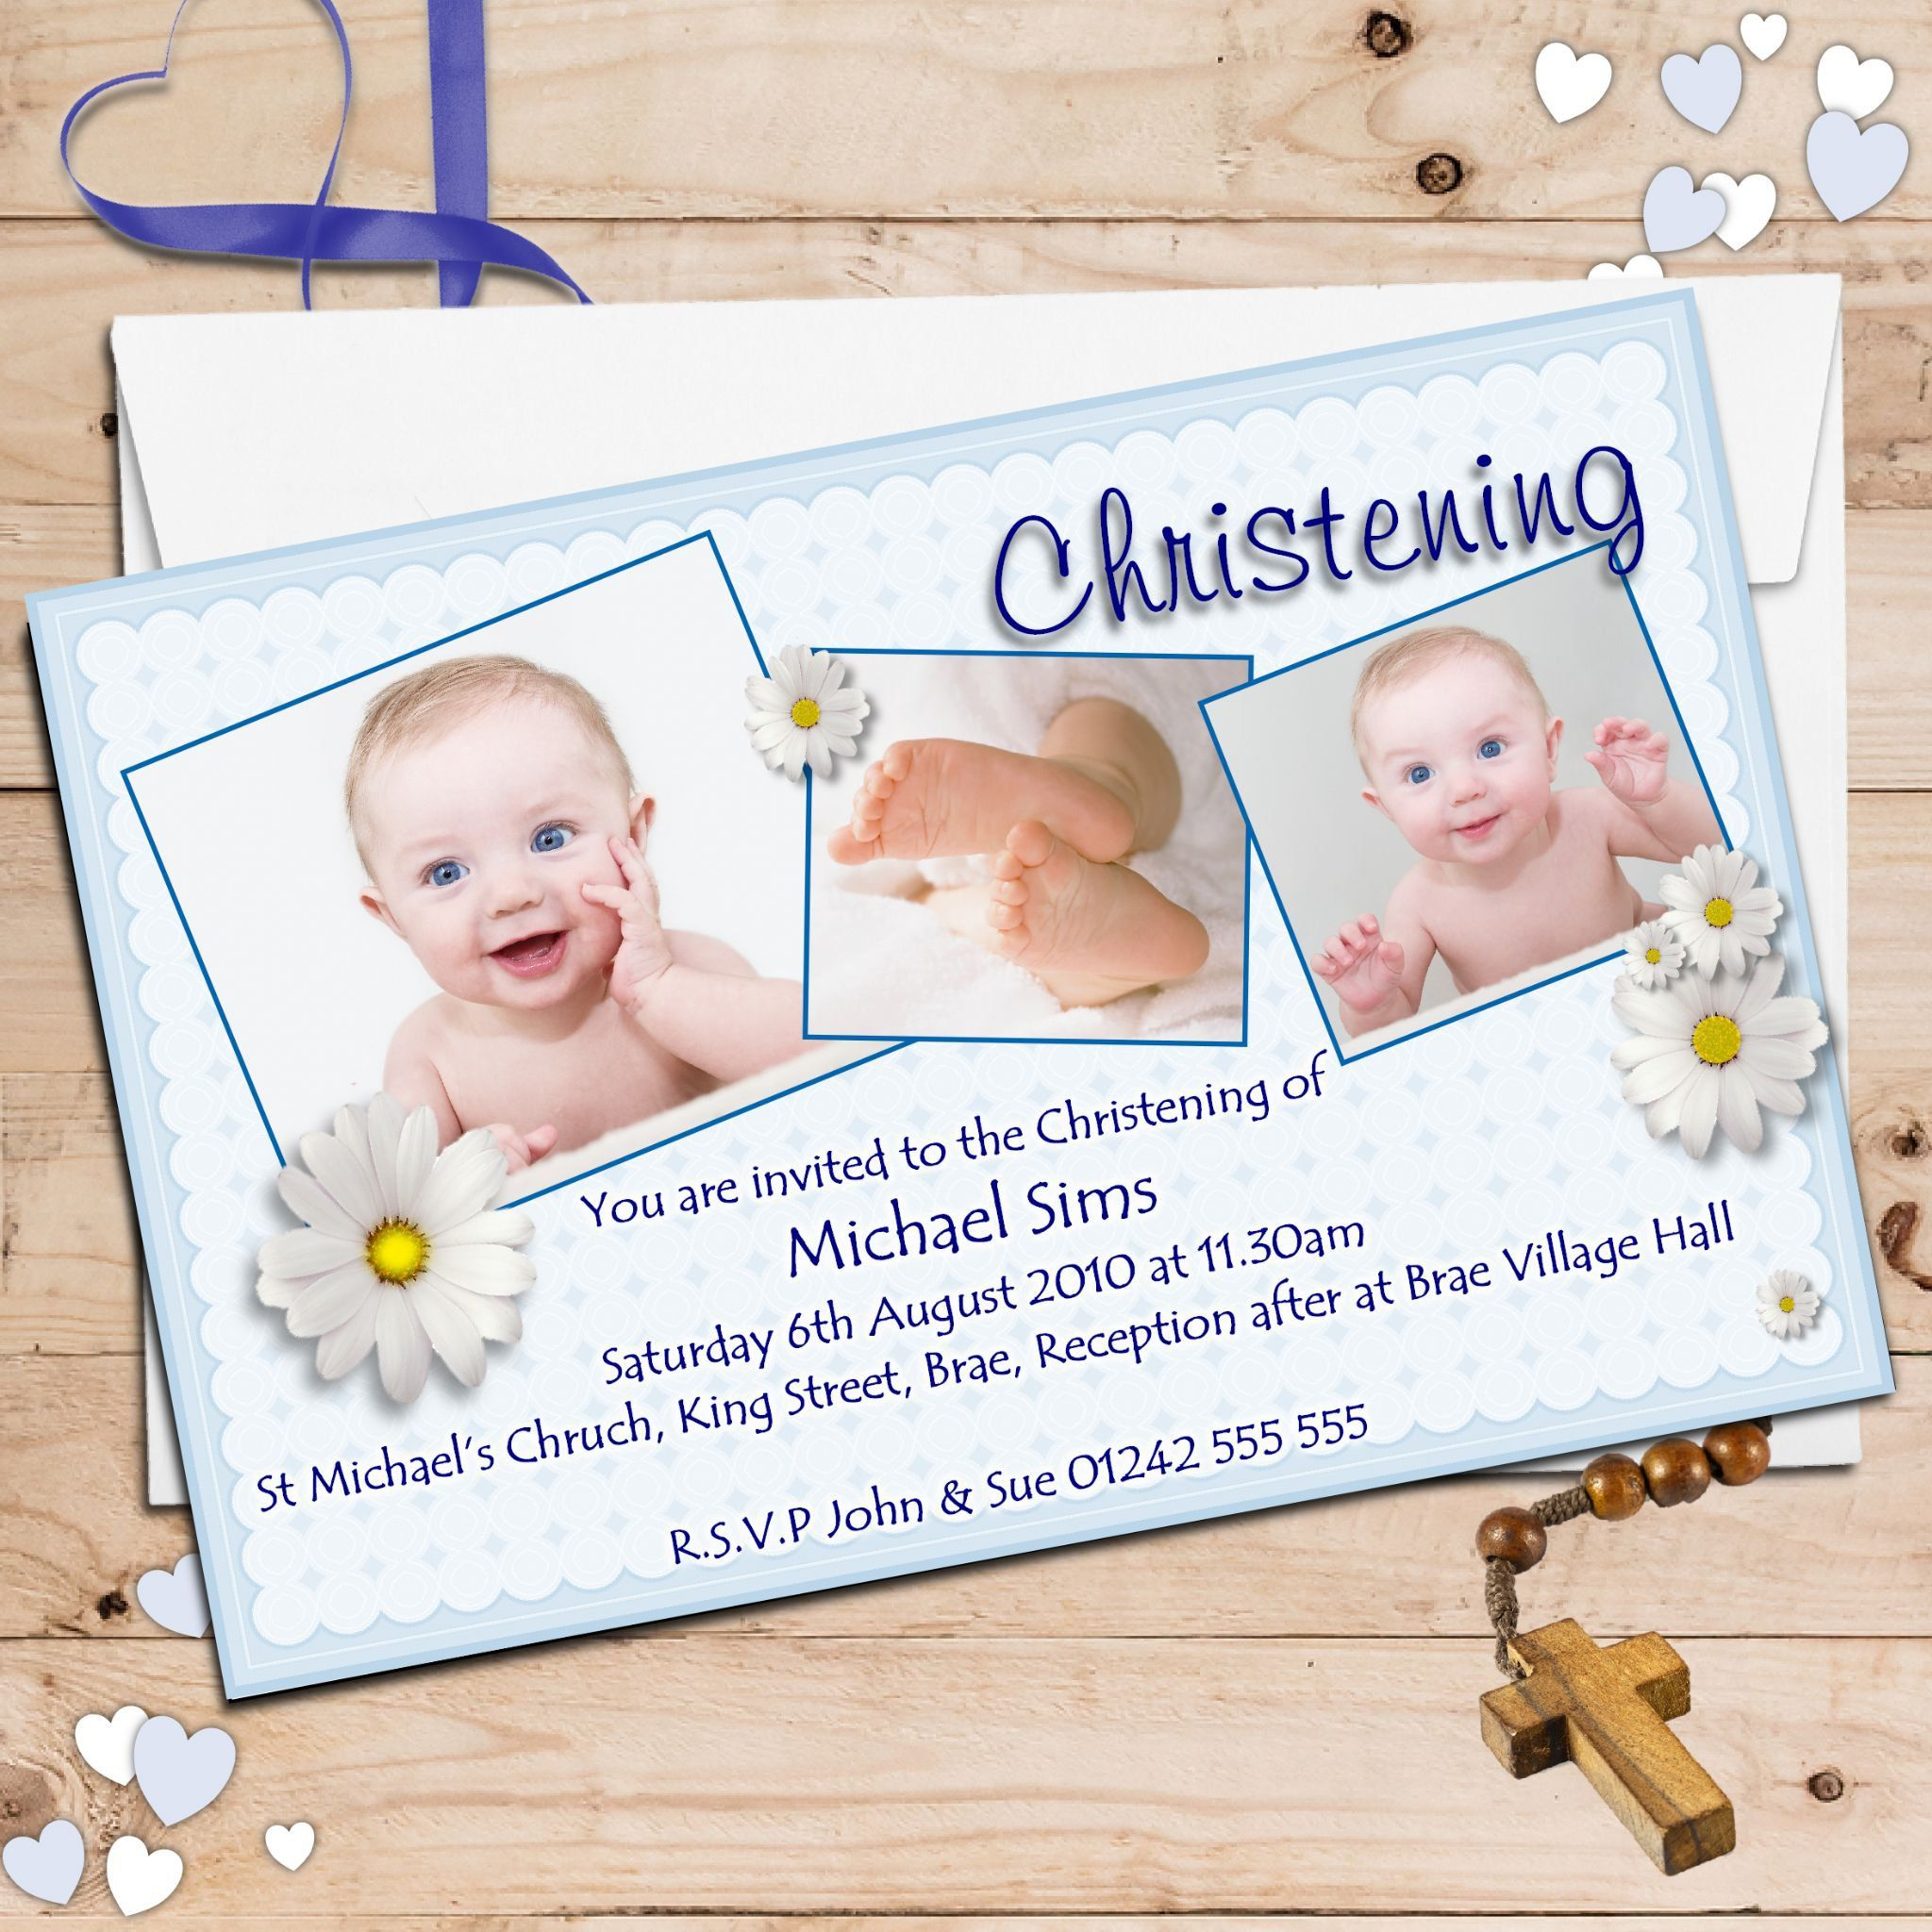 Baptism invitation card wordings baptism invitations pinterest baptism invitation card wordings stopboris Image collections